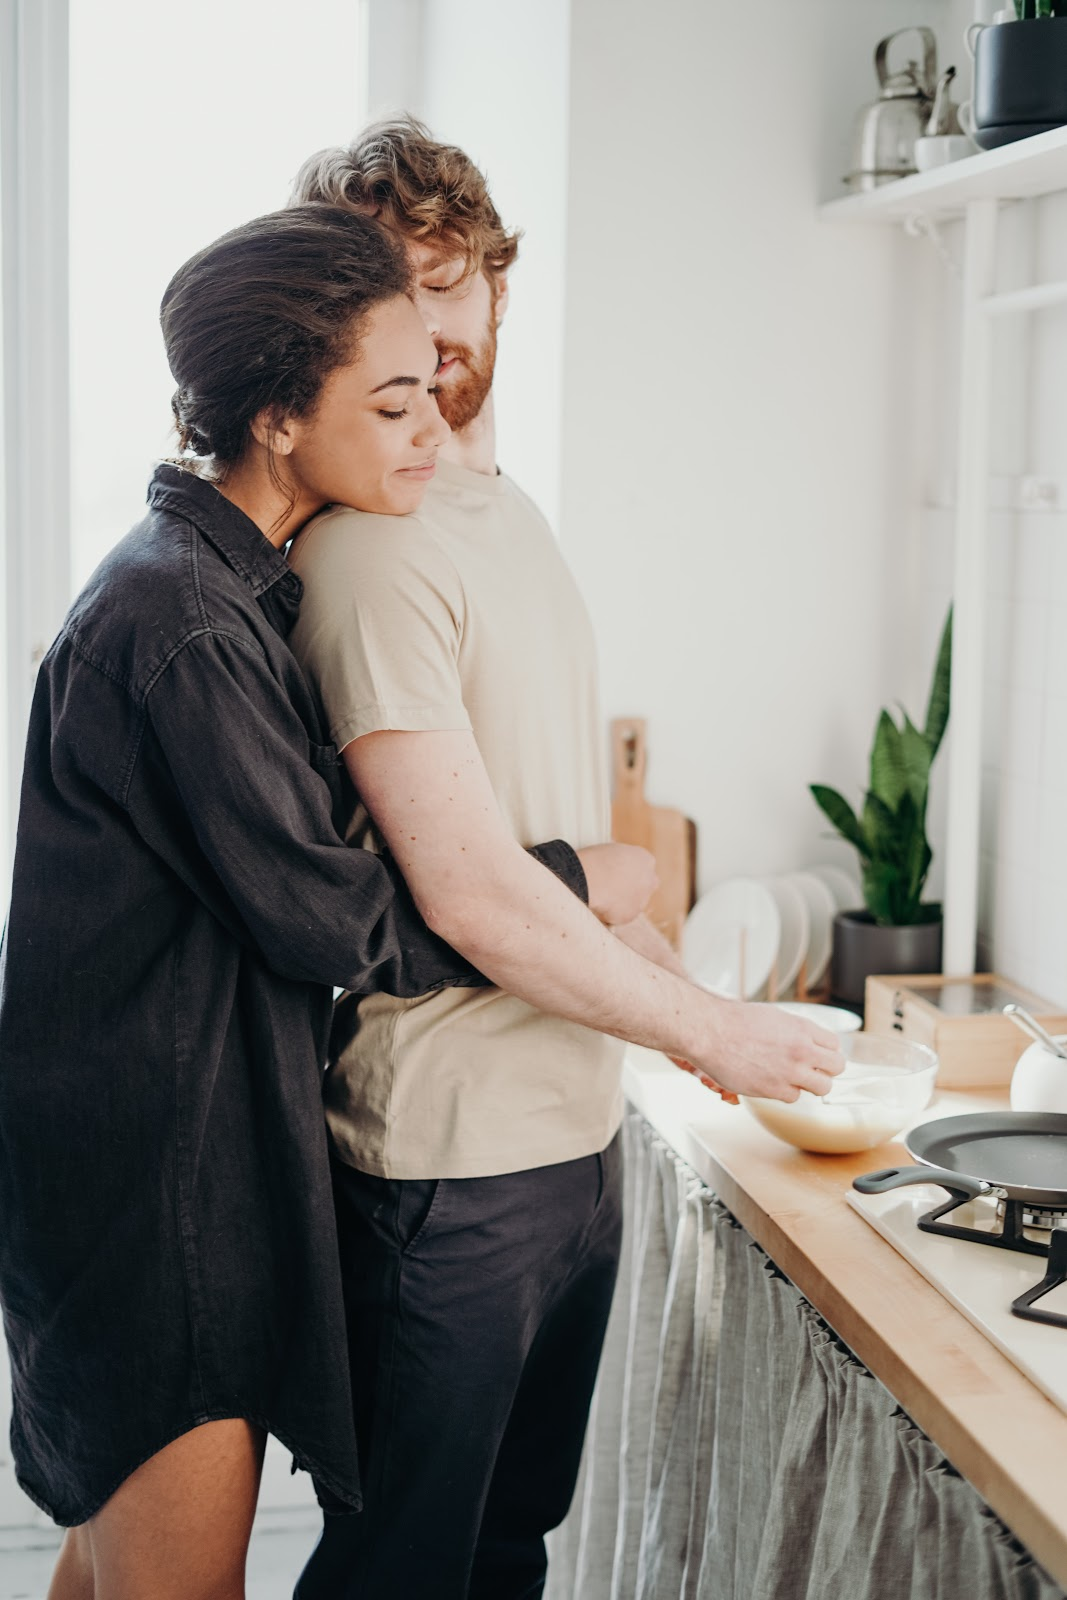 couples_indulging_in_gender-neutral_chores_have_happy_sex_lives